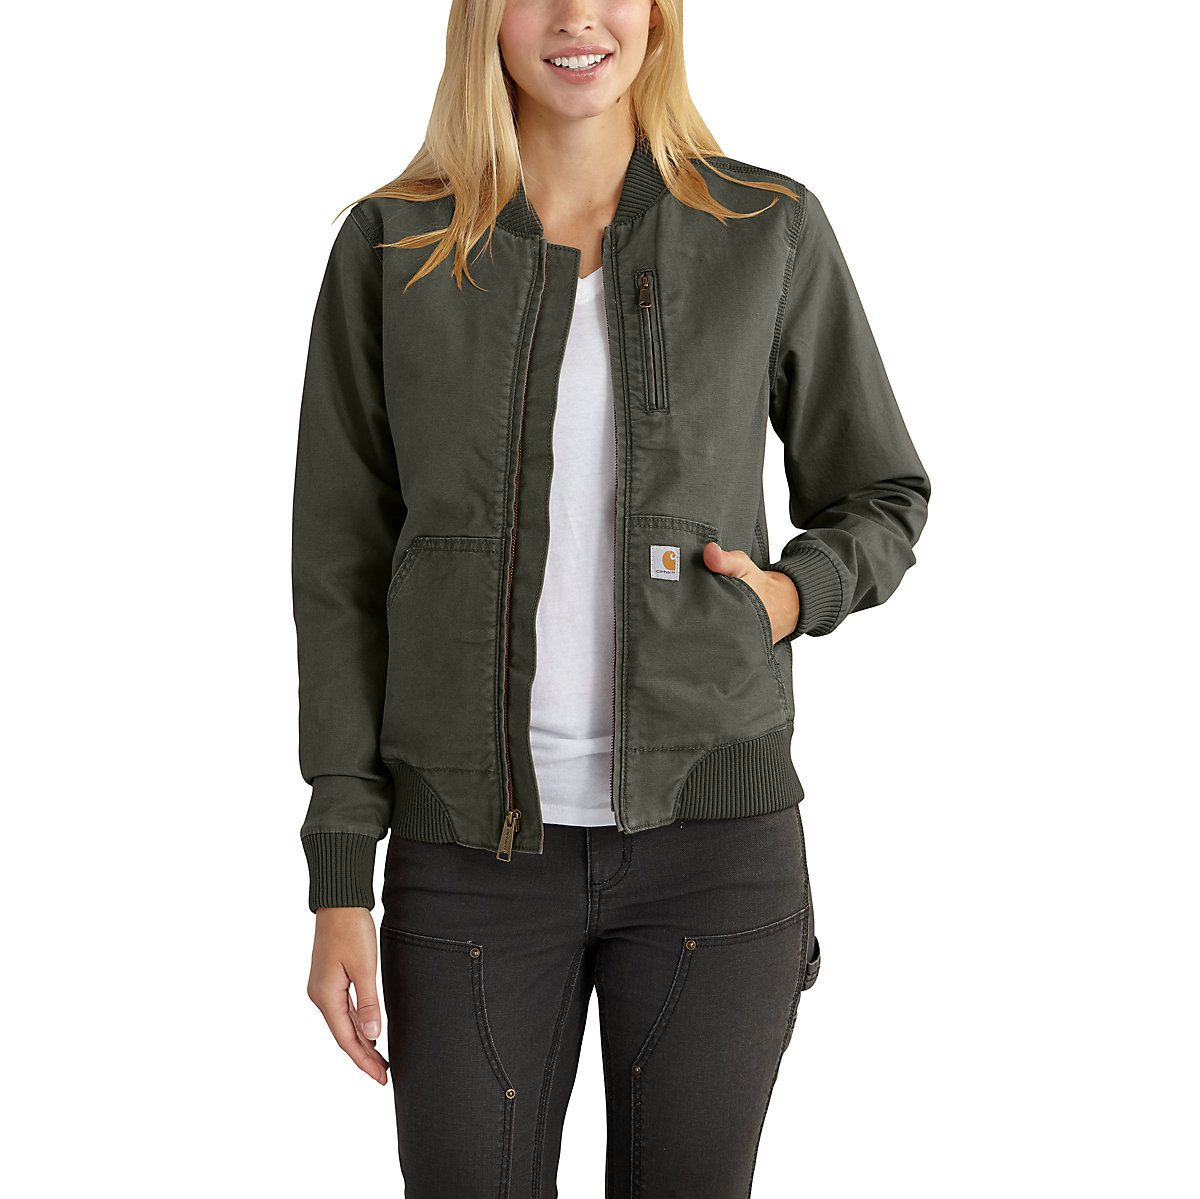 6d65120eb4 Shop the Crawford Bomber Jacket for Women's at Carhartt.com for Women's  Outerwear that works as hard as you do.